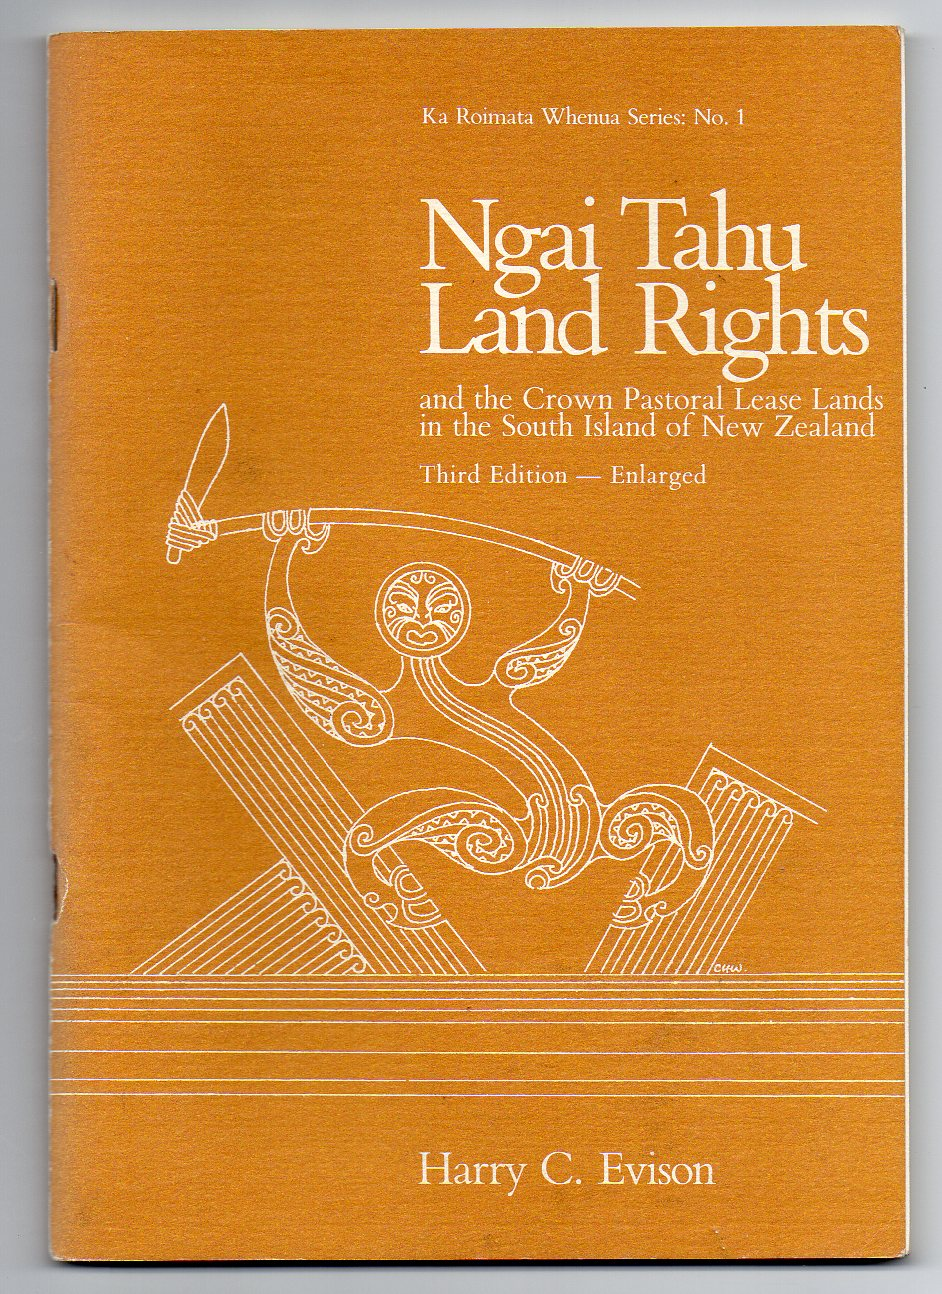 Image for Ngai Tahu Land Rights and the Crown Pastoral Lease Lands in the South Island of New Zealand